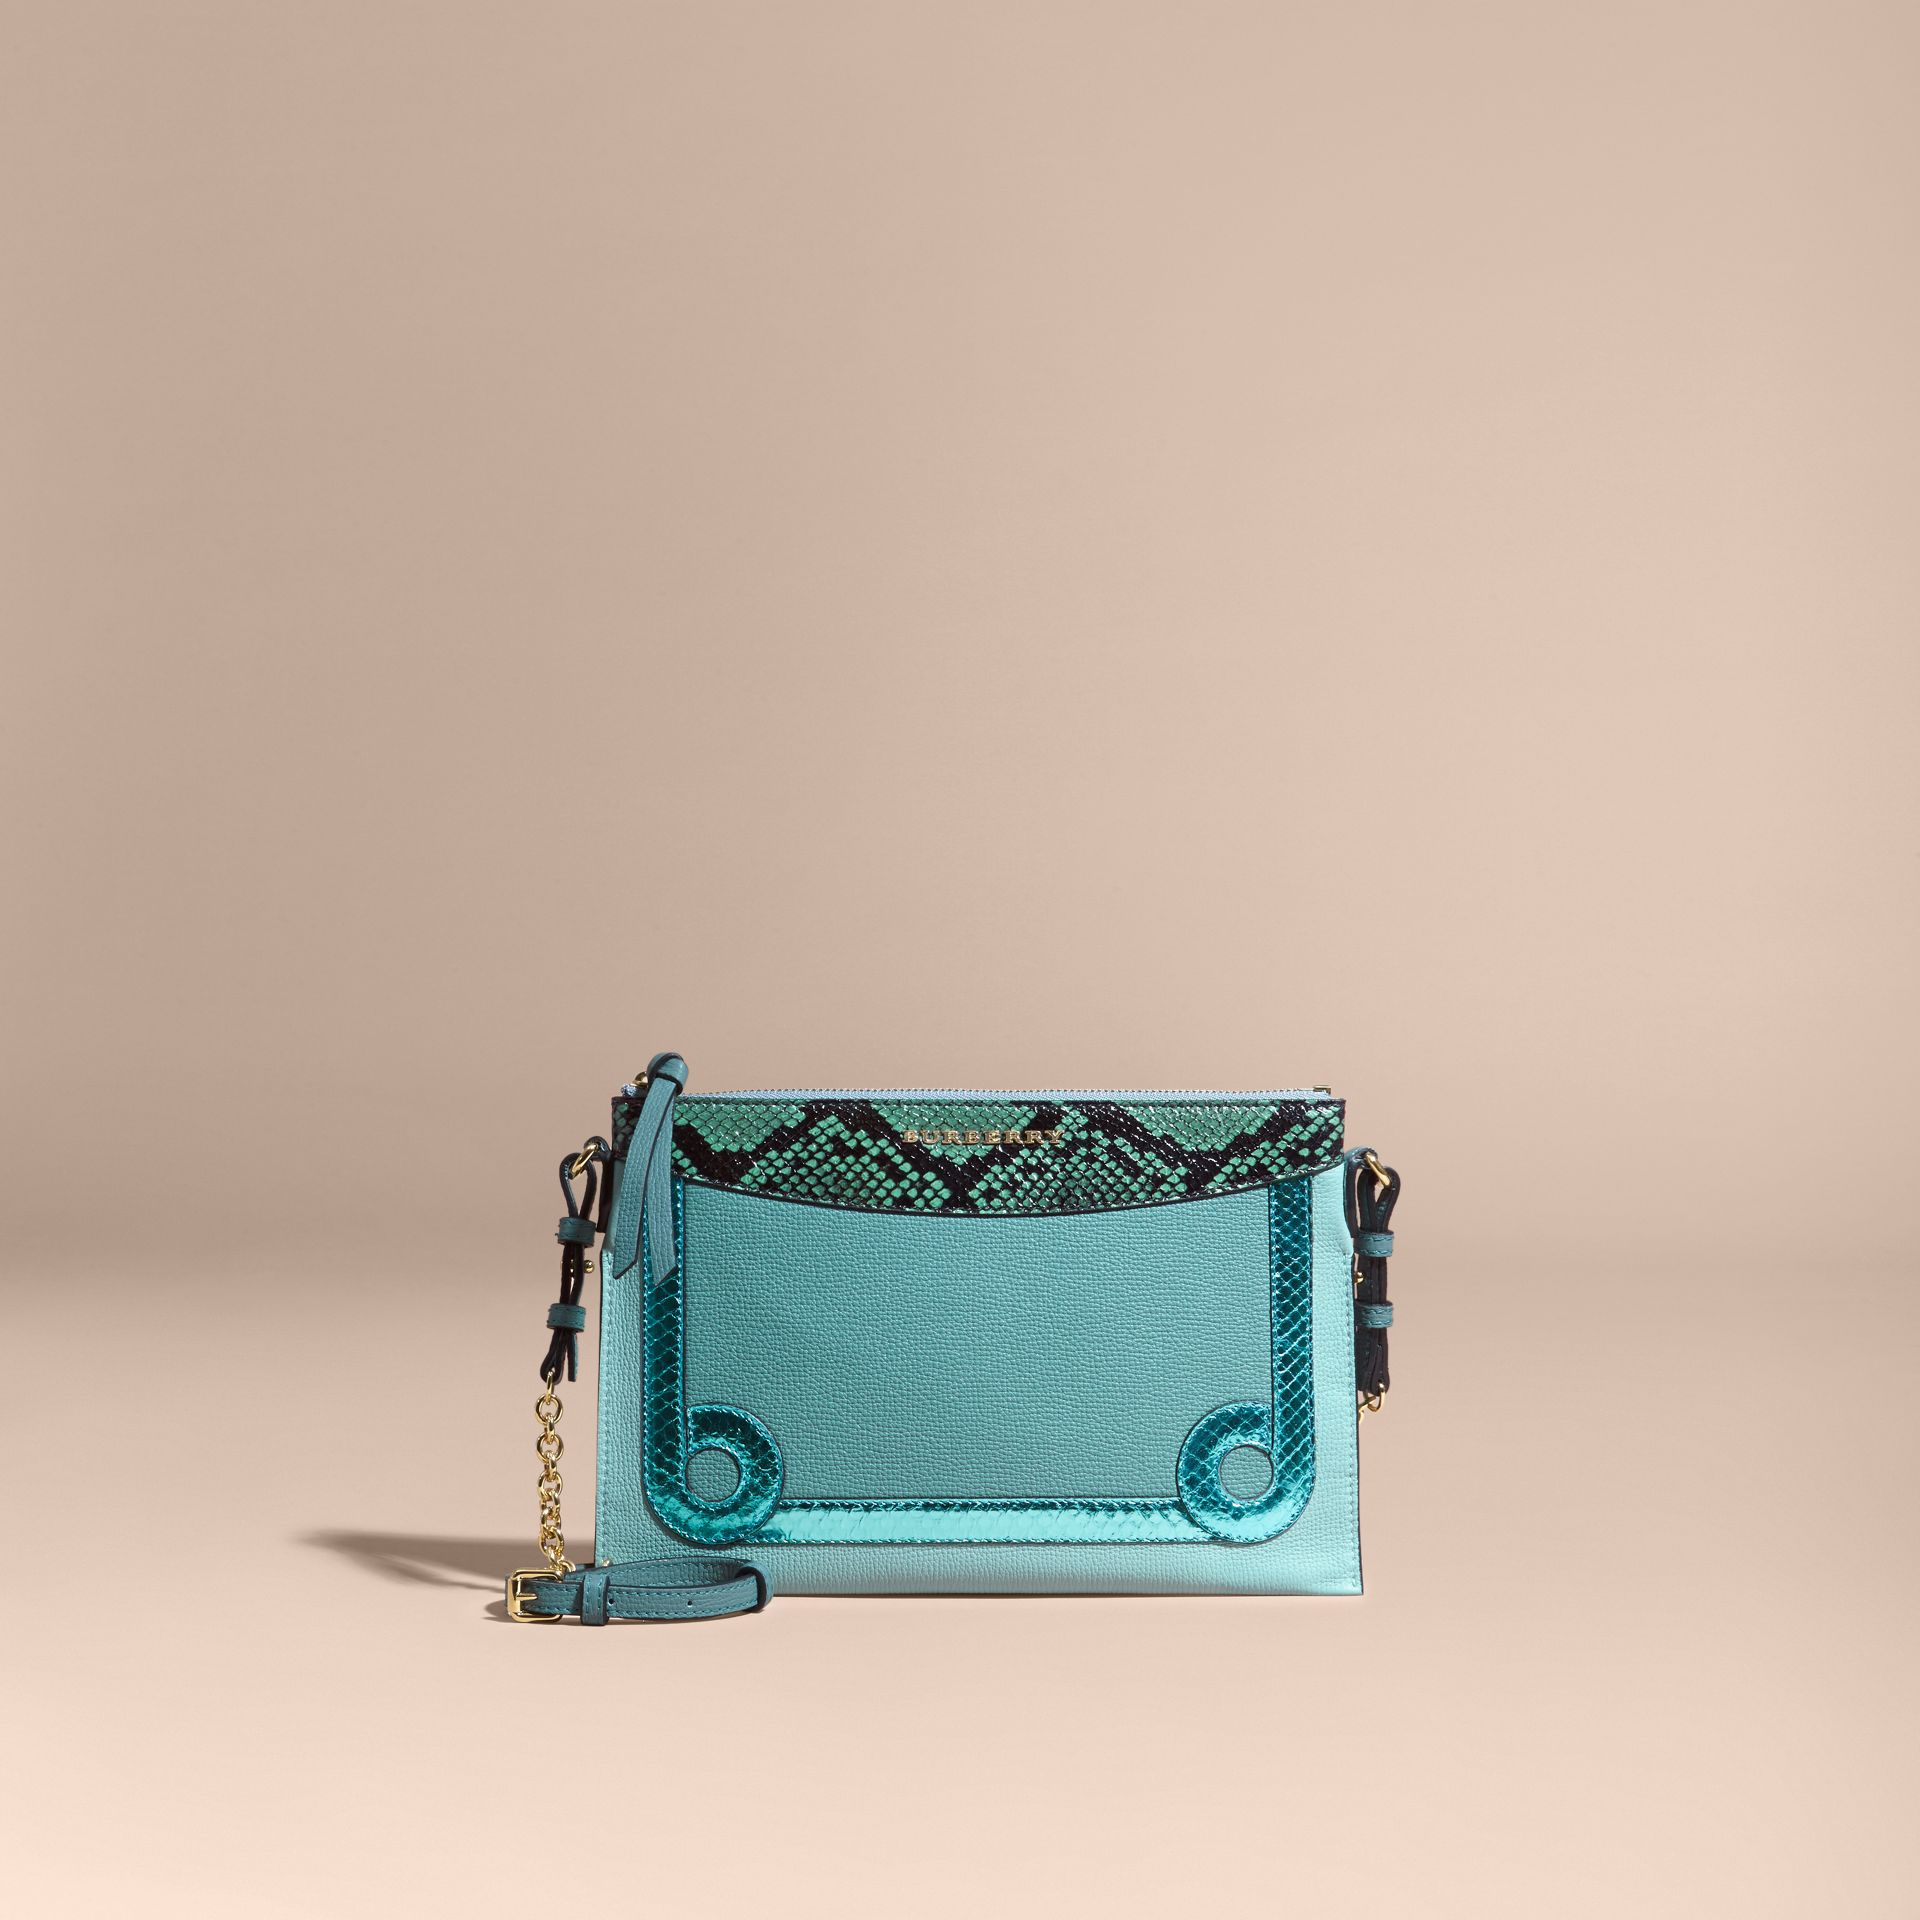 Celadon blue Leather and Snakeskin Clutch Bag Celadon Blue - gallery image 9